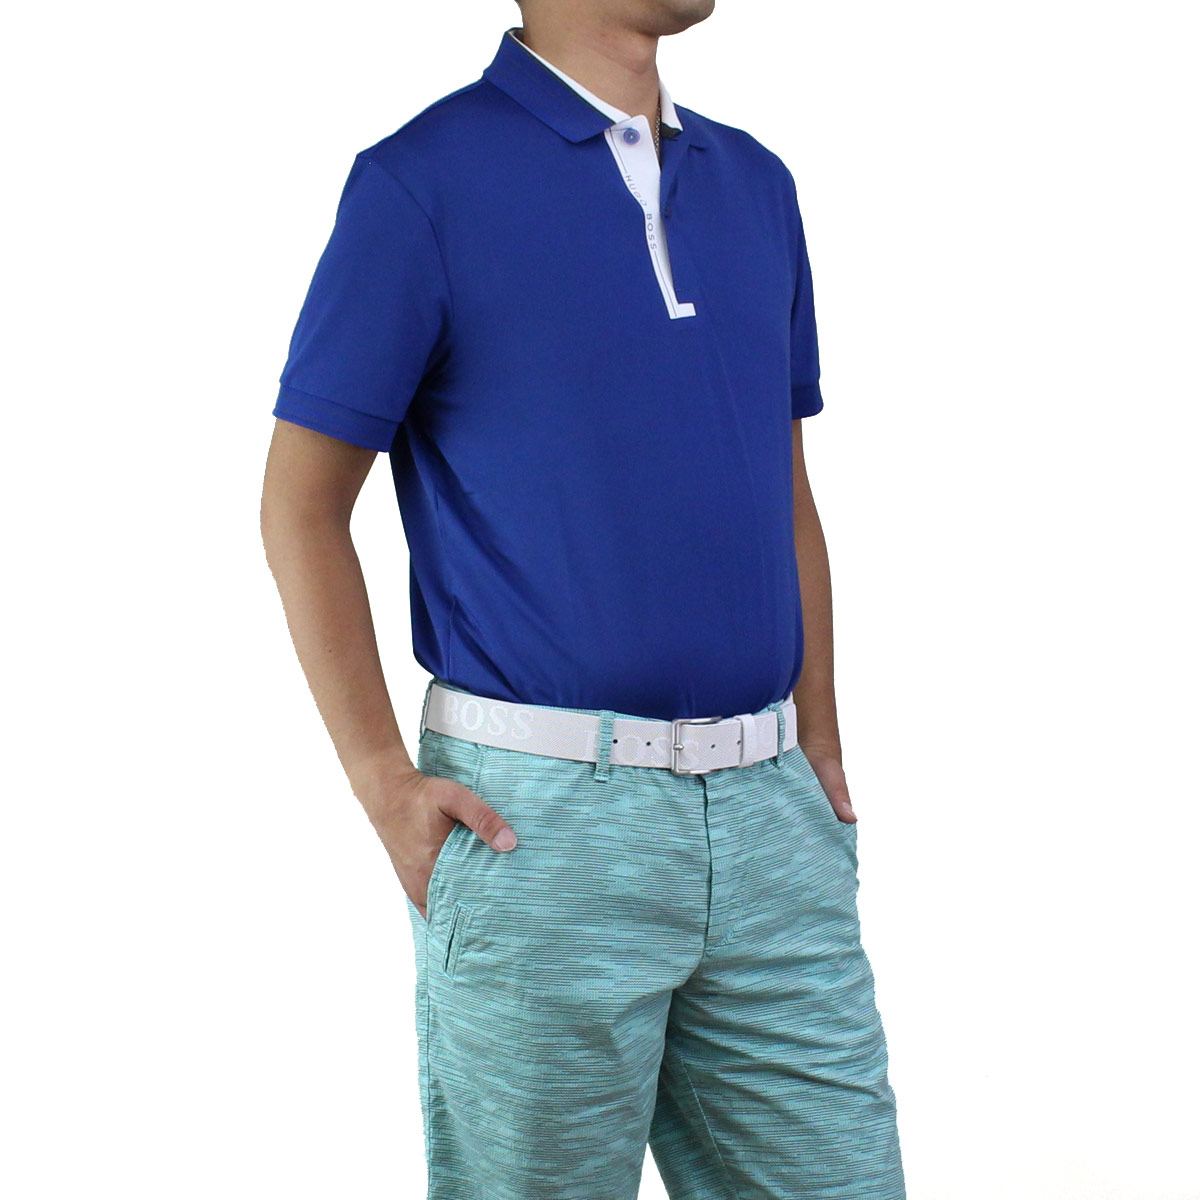 335e0e071 Bighit The total brand wholesale: Hugo Boss HUGO BOSS PADDY PRO 1  パディプロポロシャツ short sleeves golf wear 50403515 10208323 462 blue system men ...